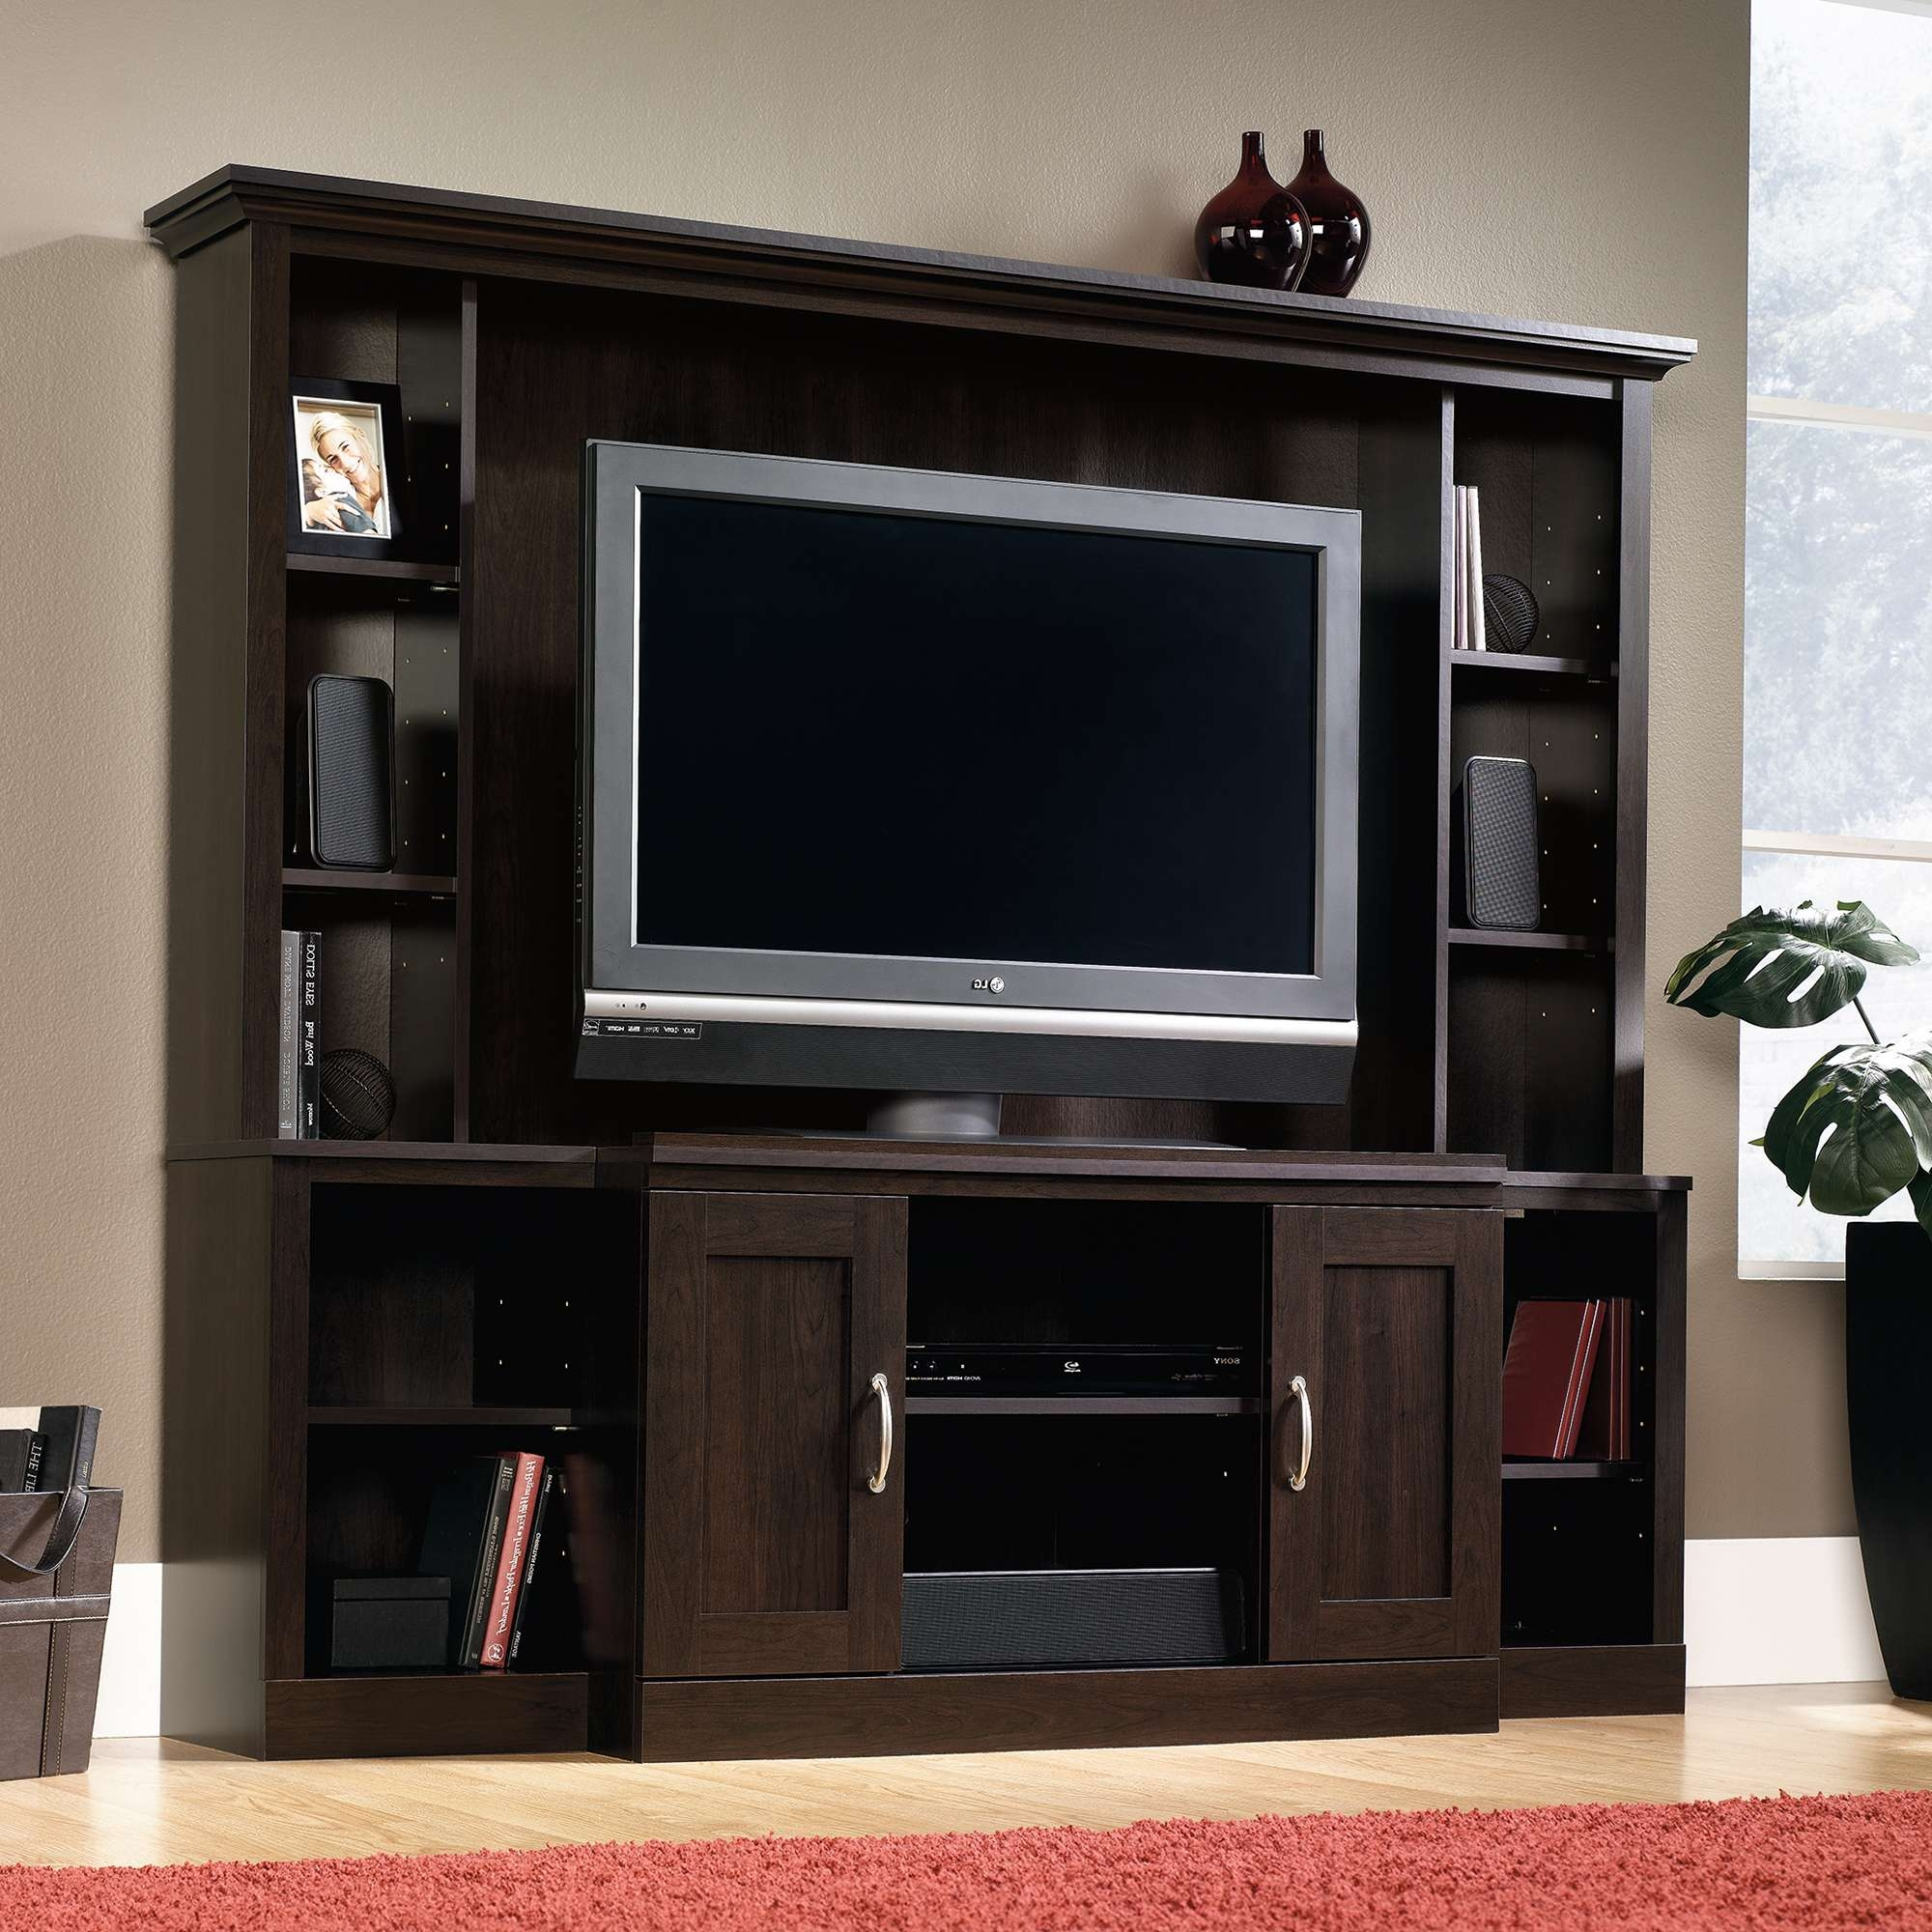 Trendy Espresso Wood Entertainment Center With Flat Screen Tv Pertaining To Entertainment Center Tv Stands (View 10 of 15)